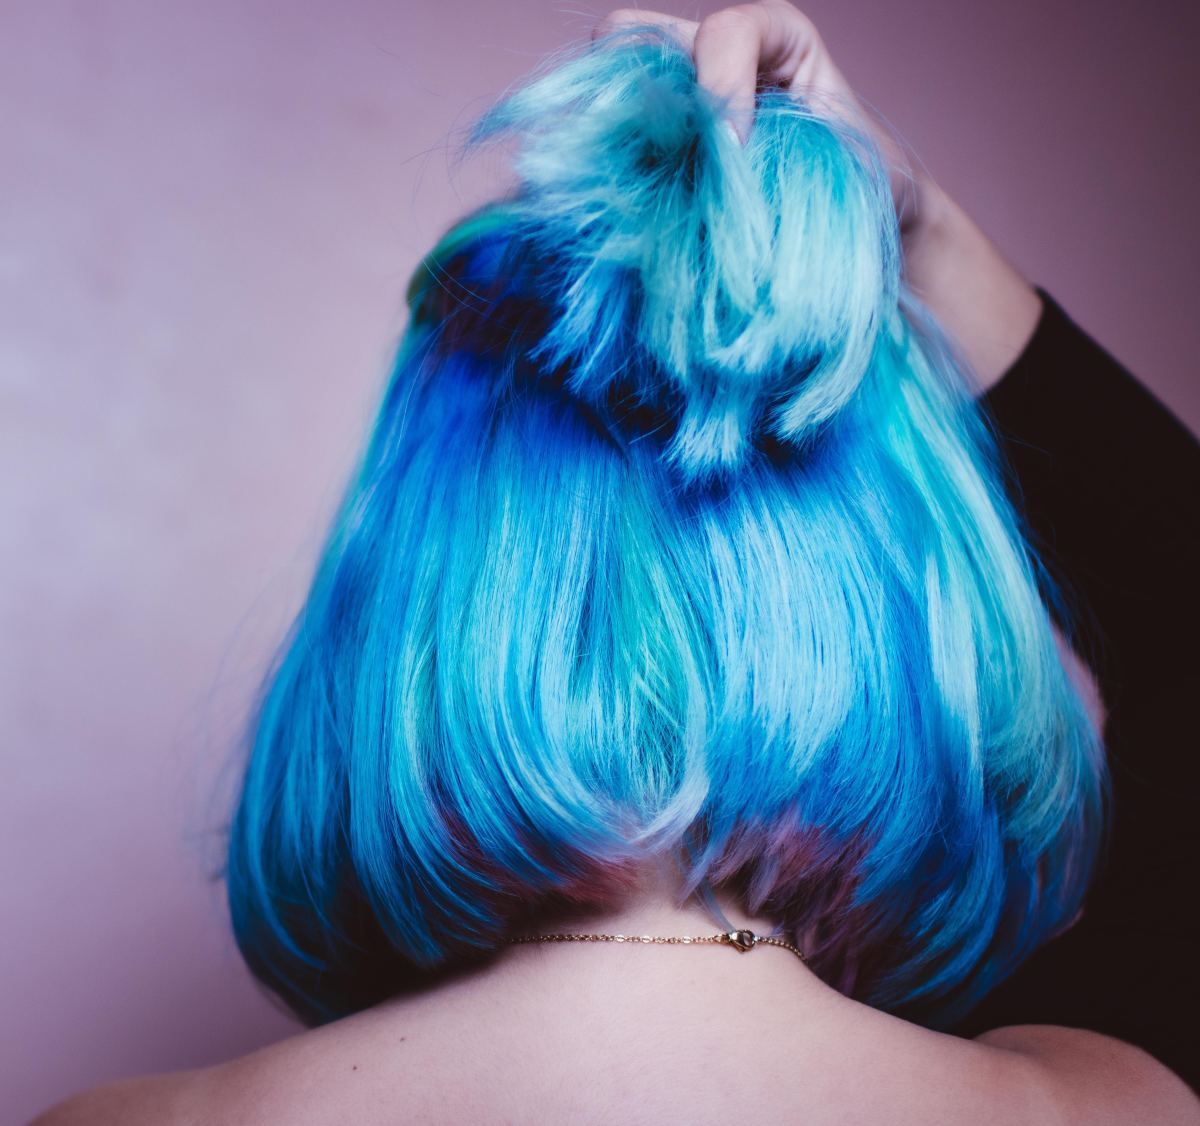 Kool-Aid Hair Dye: How to Color Your Hair on a Budget